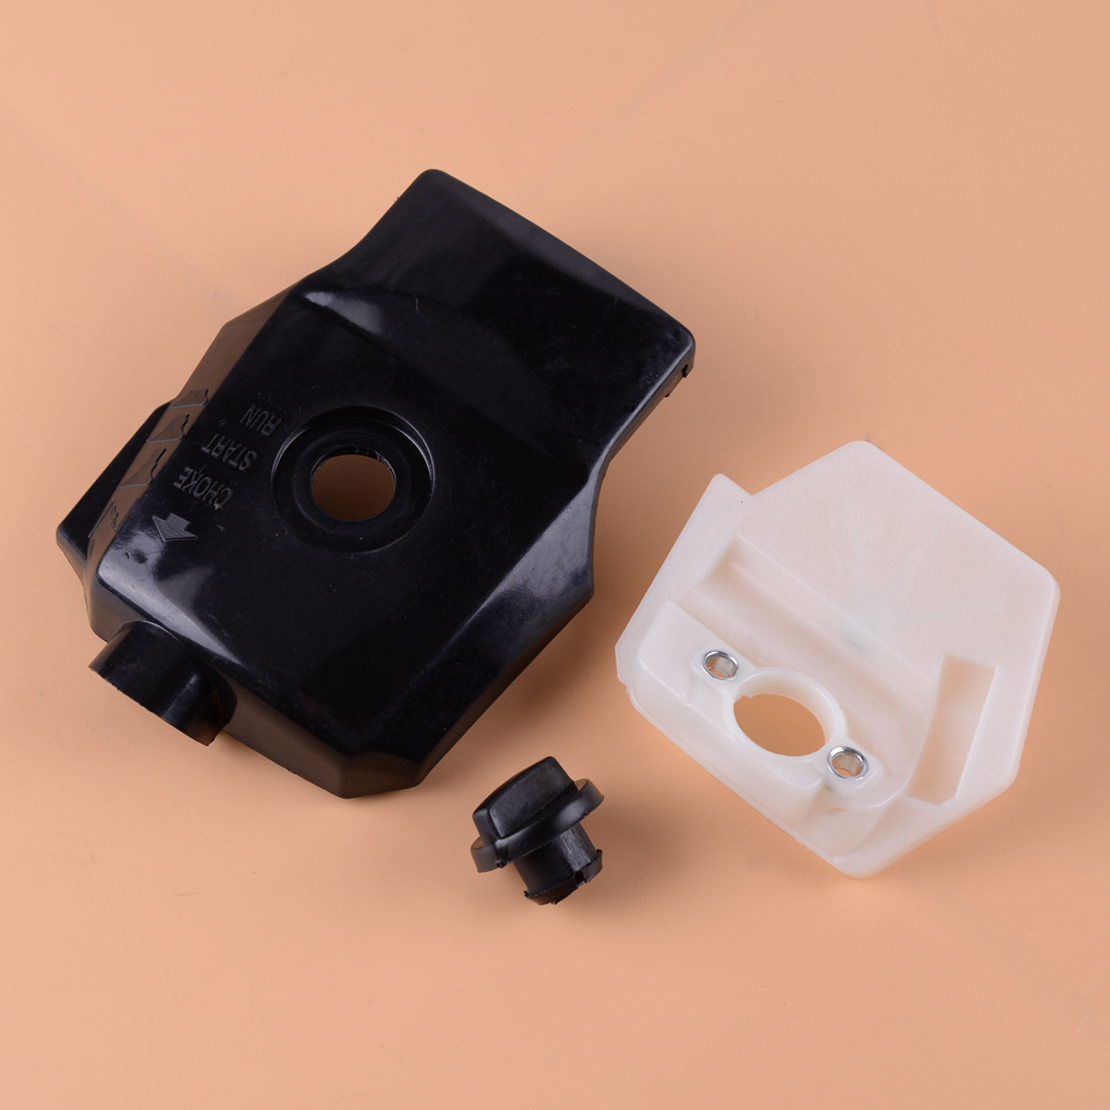 LETAOSK 3pcs Plastic Air Filter Cleaner Cover Housing Kit Parts Fit For Chinese Chainsaws 2500 25cc Timberpro Lawnflite Carlton